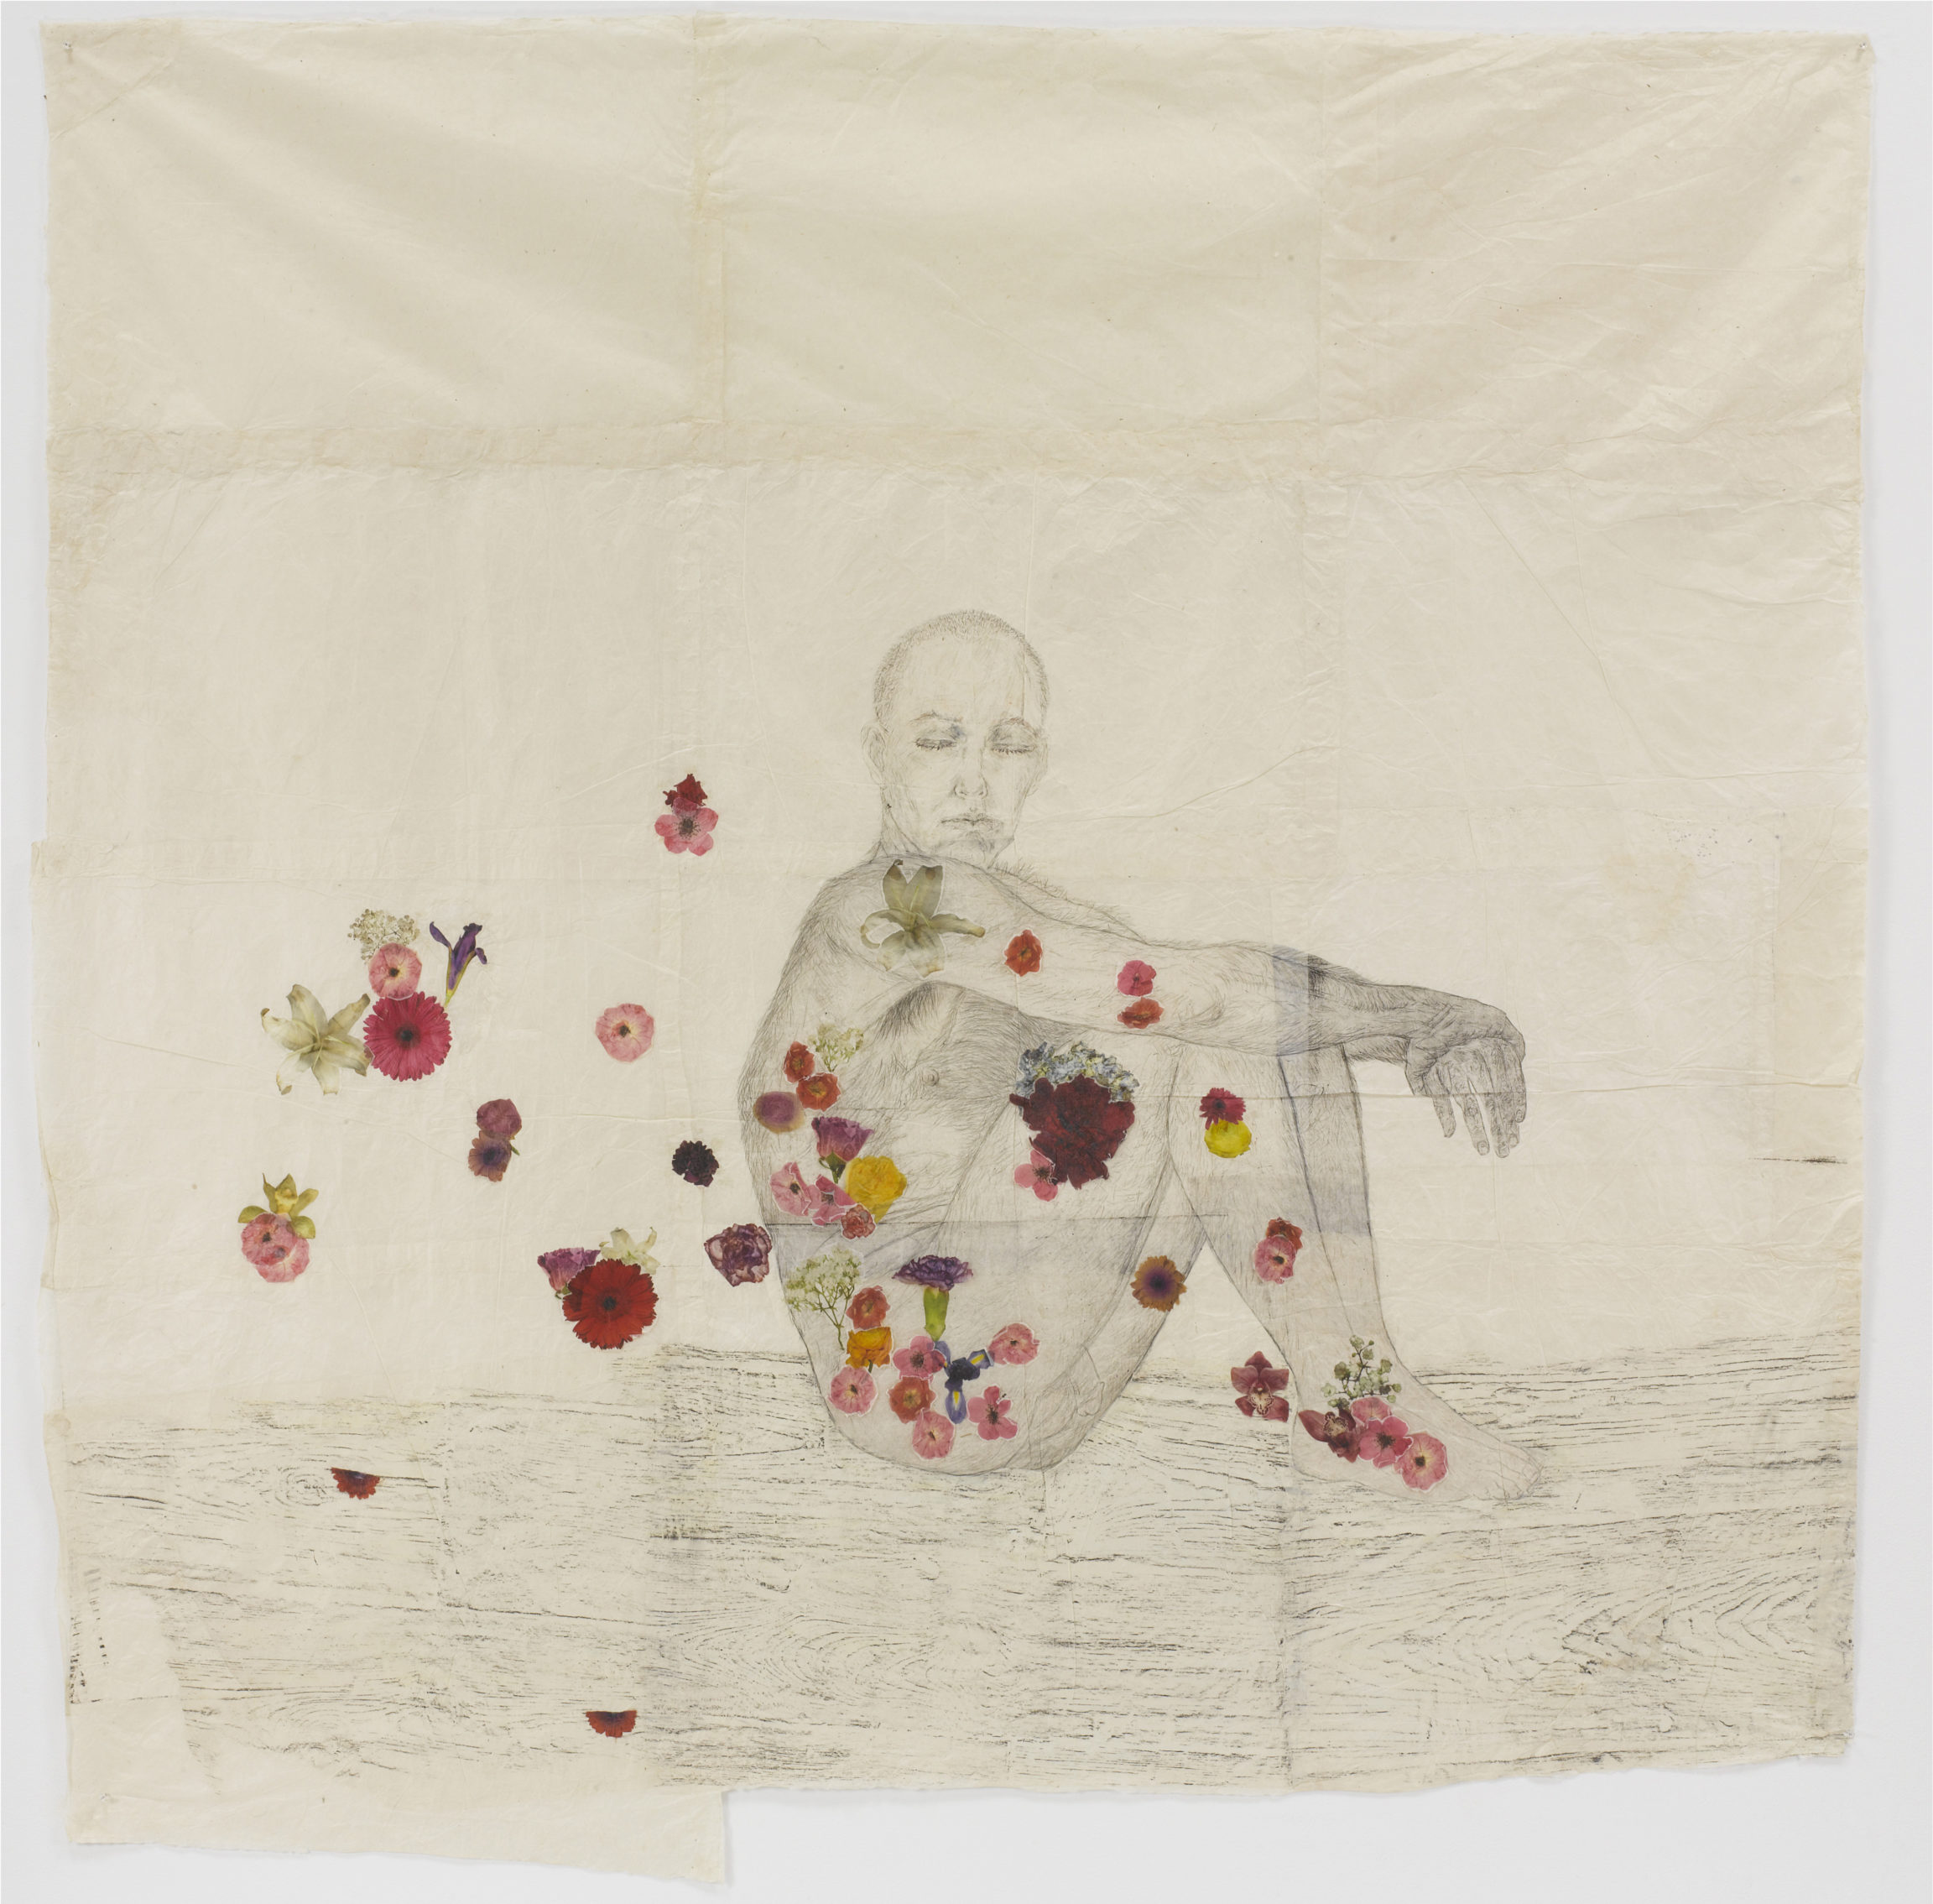 Kiki Smith. Hearing You with My Eyes